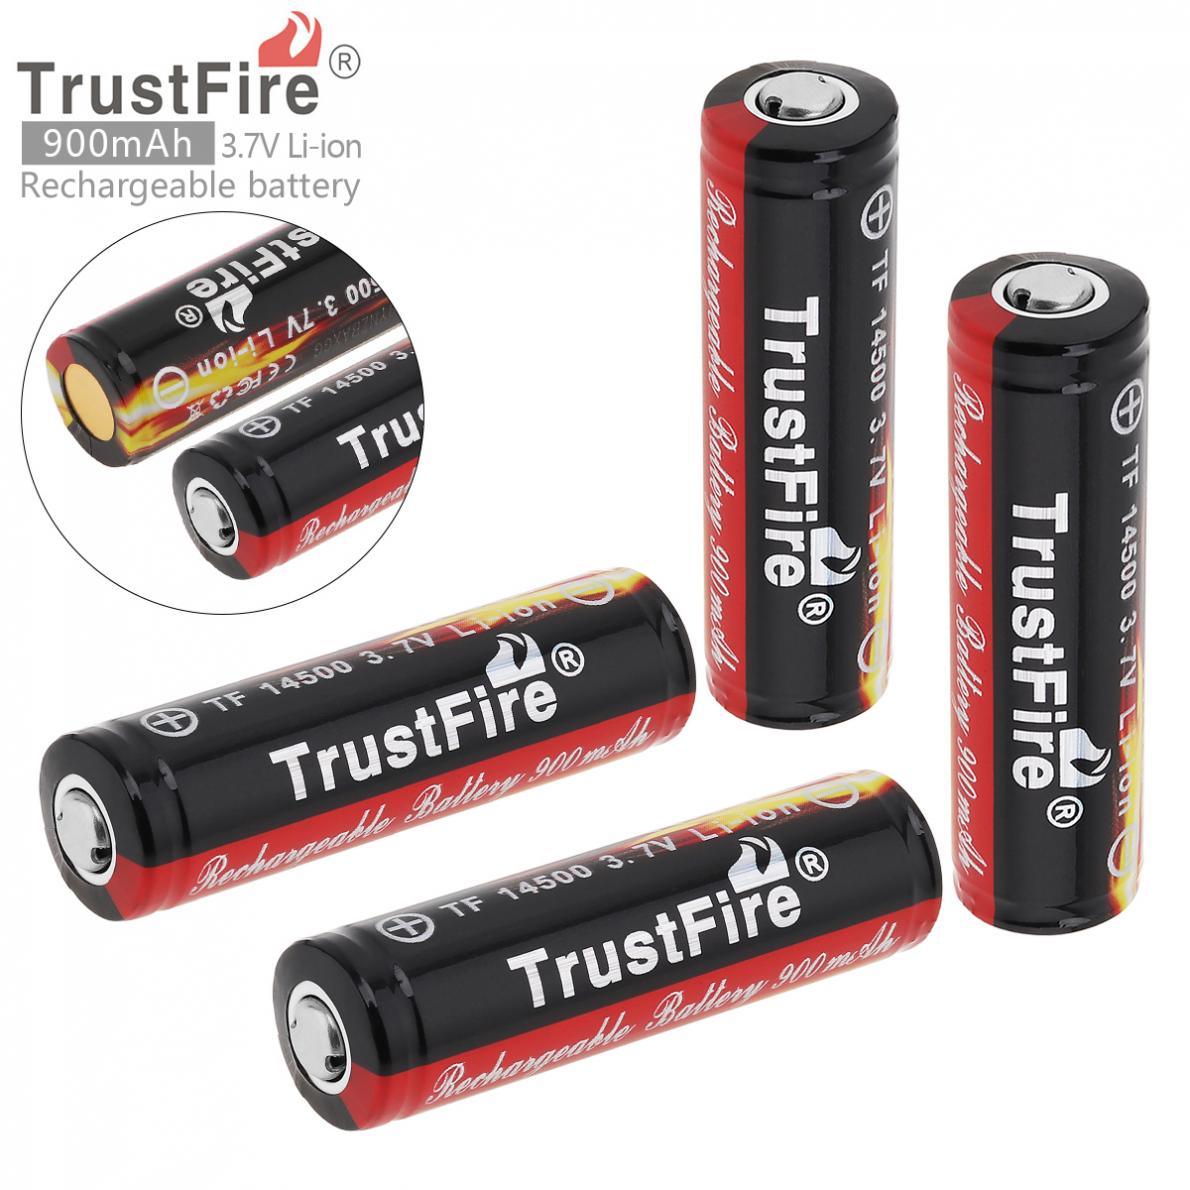 4 Pieces/set TrstFire 14500 Battery 3.7V ICR14500 900Mah Li-ion Rechargeable Battery Batteries Bateria For LED Flashlight ultrafire lc 14500 rechargeable 900mah 3 6v li ion battery blue